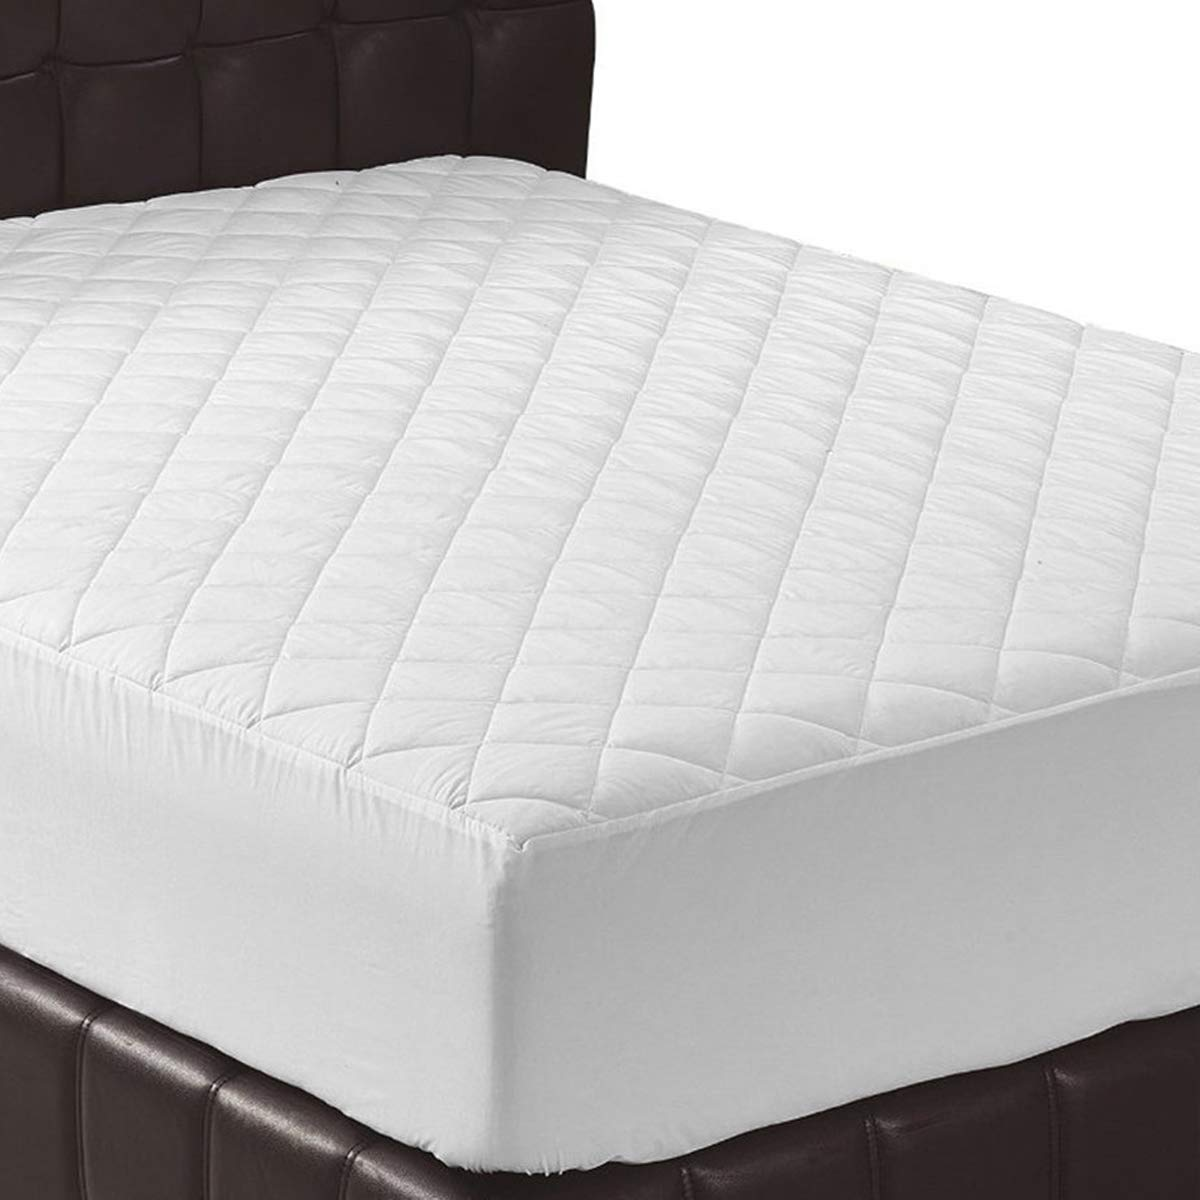 Utopia Bedding Quilted Fitted Mattress Pad (Full) - Mattress Cover Stretches up to 16 Inches Deep - Mattress Topper